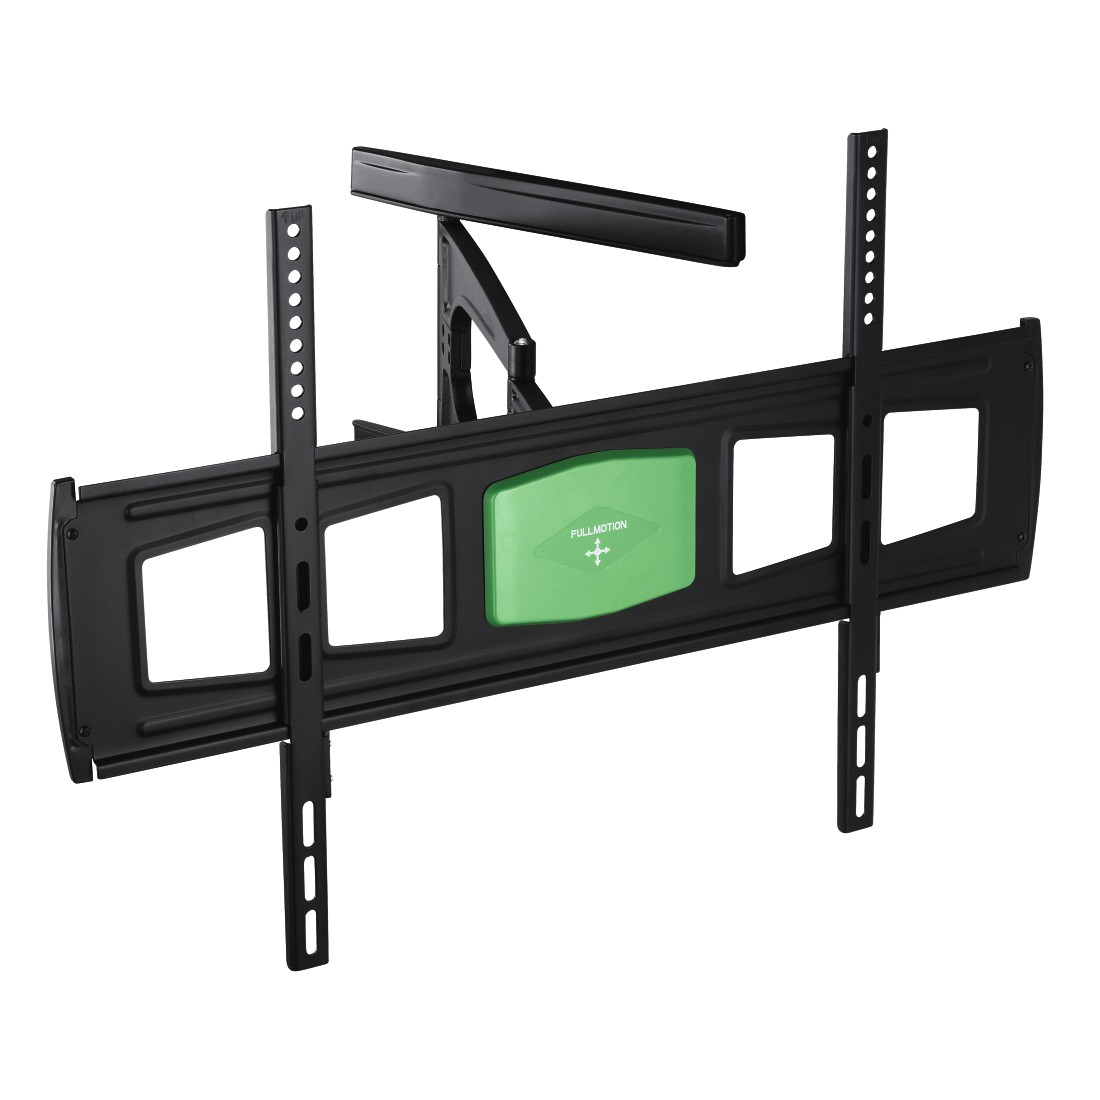 dex9 High-Res Detail 9 - Hama, Ultraslim FULLMOTION TV Wall Bracket, 3 stars, 165 cm (65), 2 arms, bk